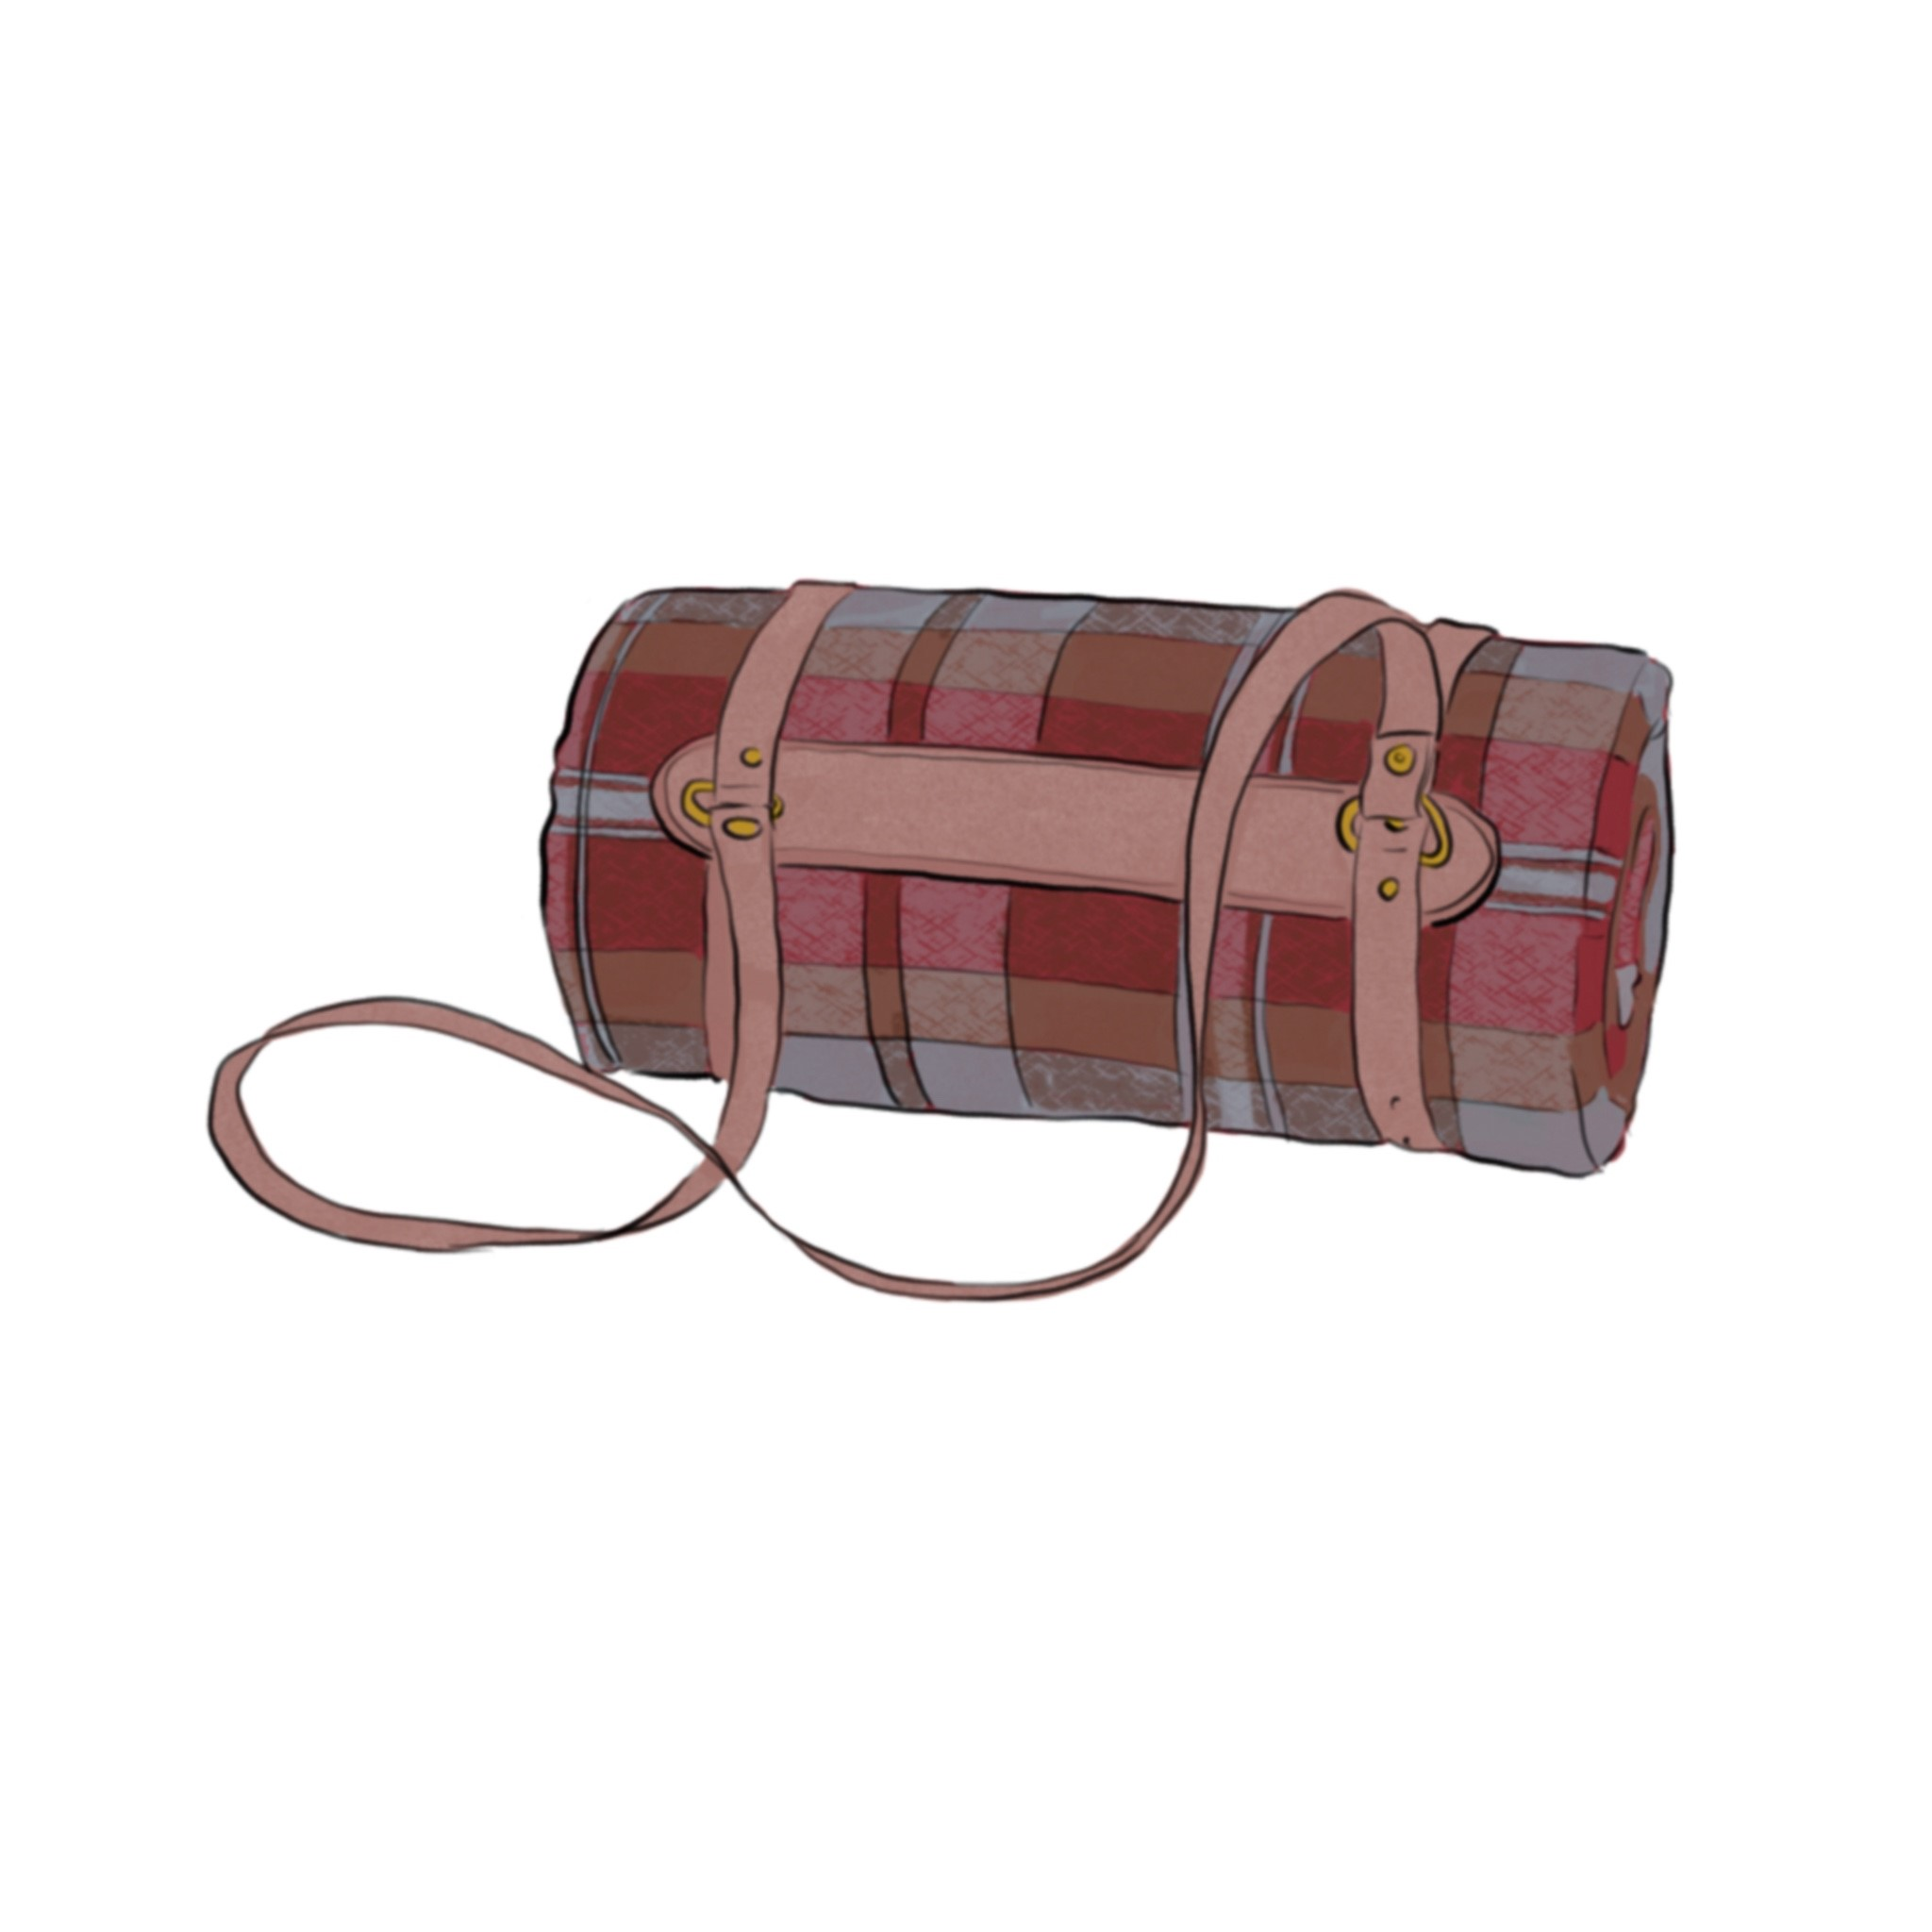 Illustration of plaid blanket rolled up with a leather carrying strap around it.